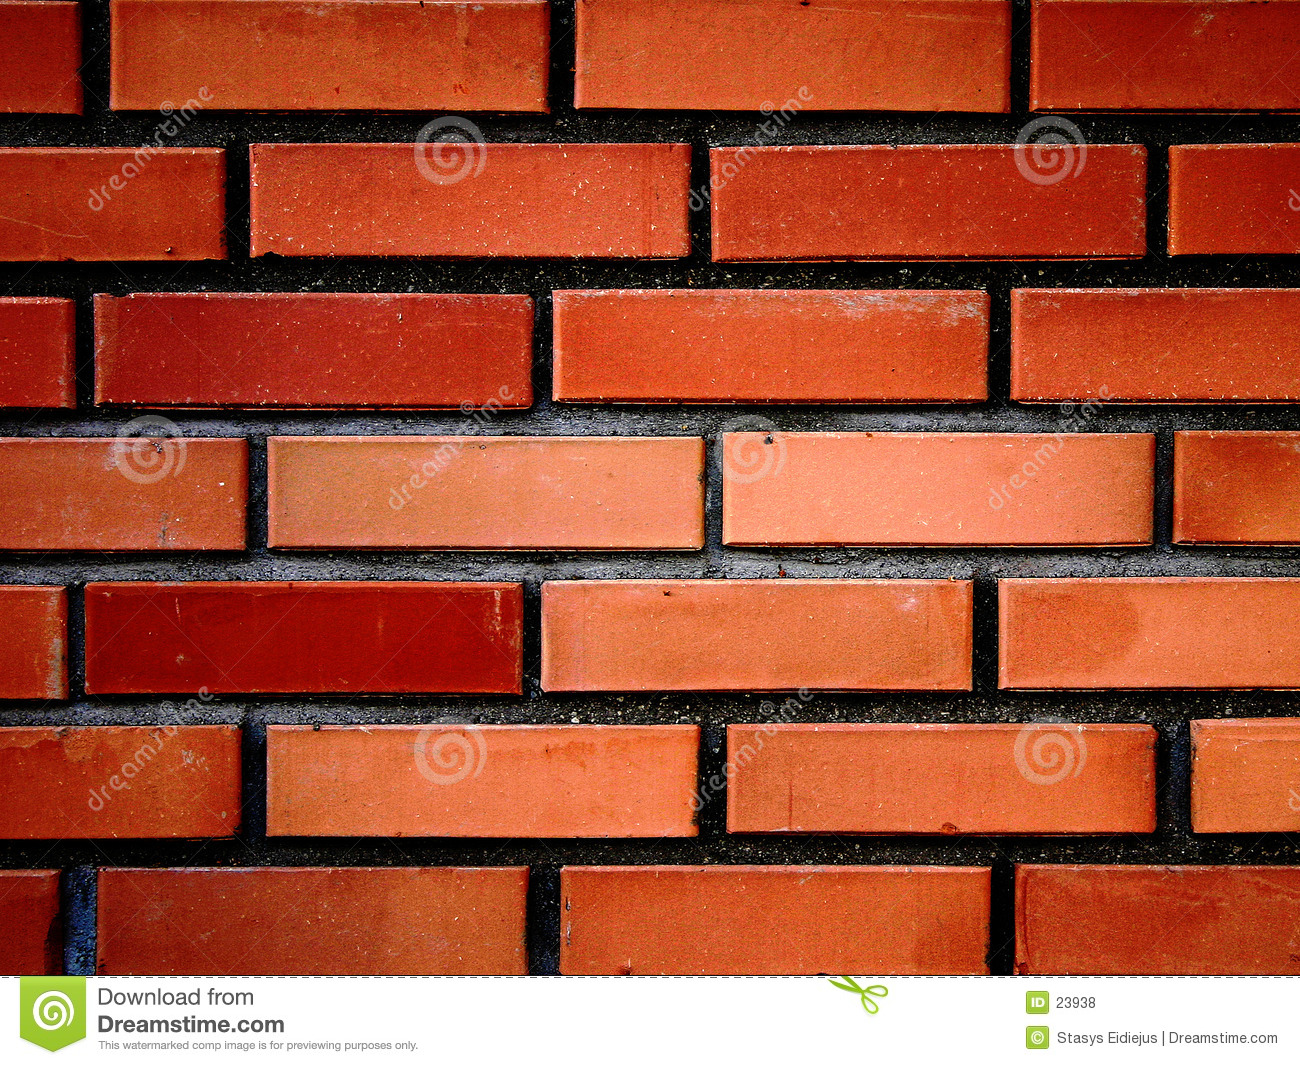 Red bricks wall III